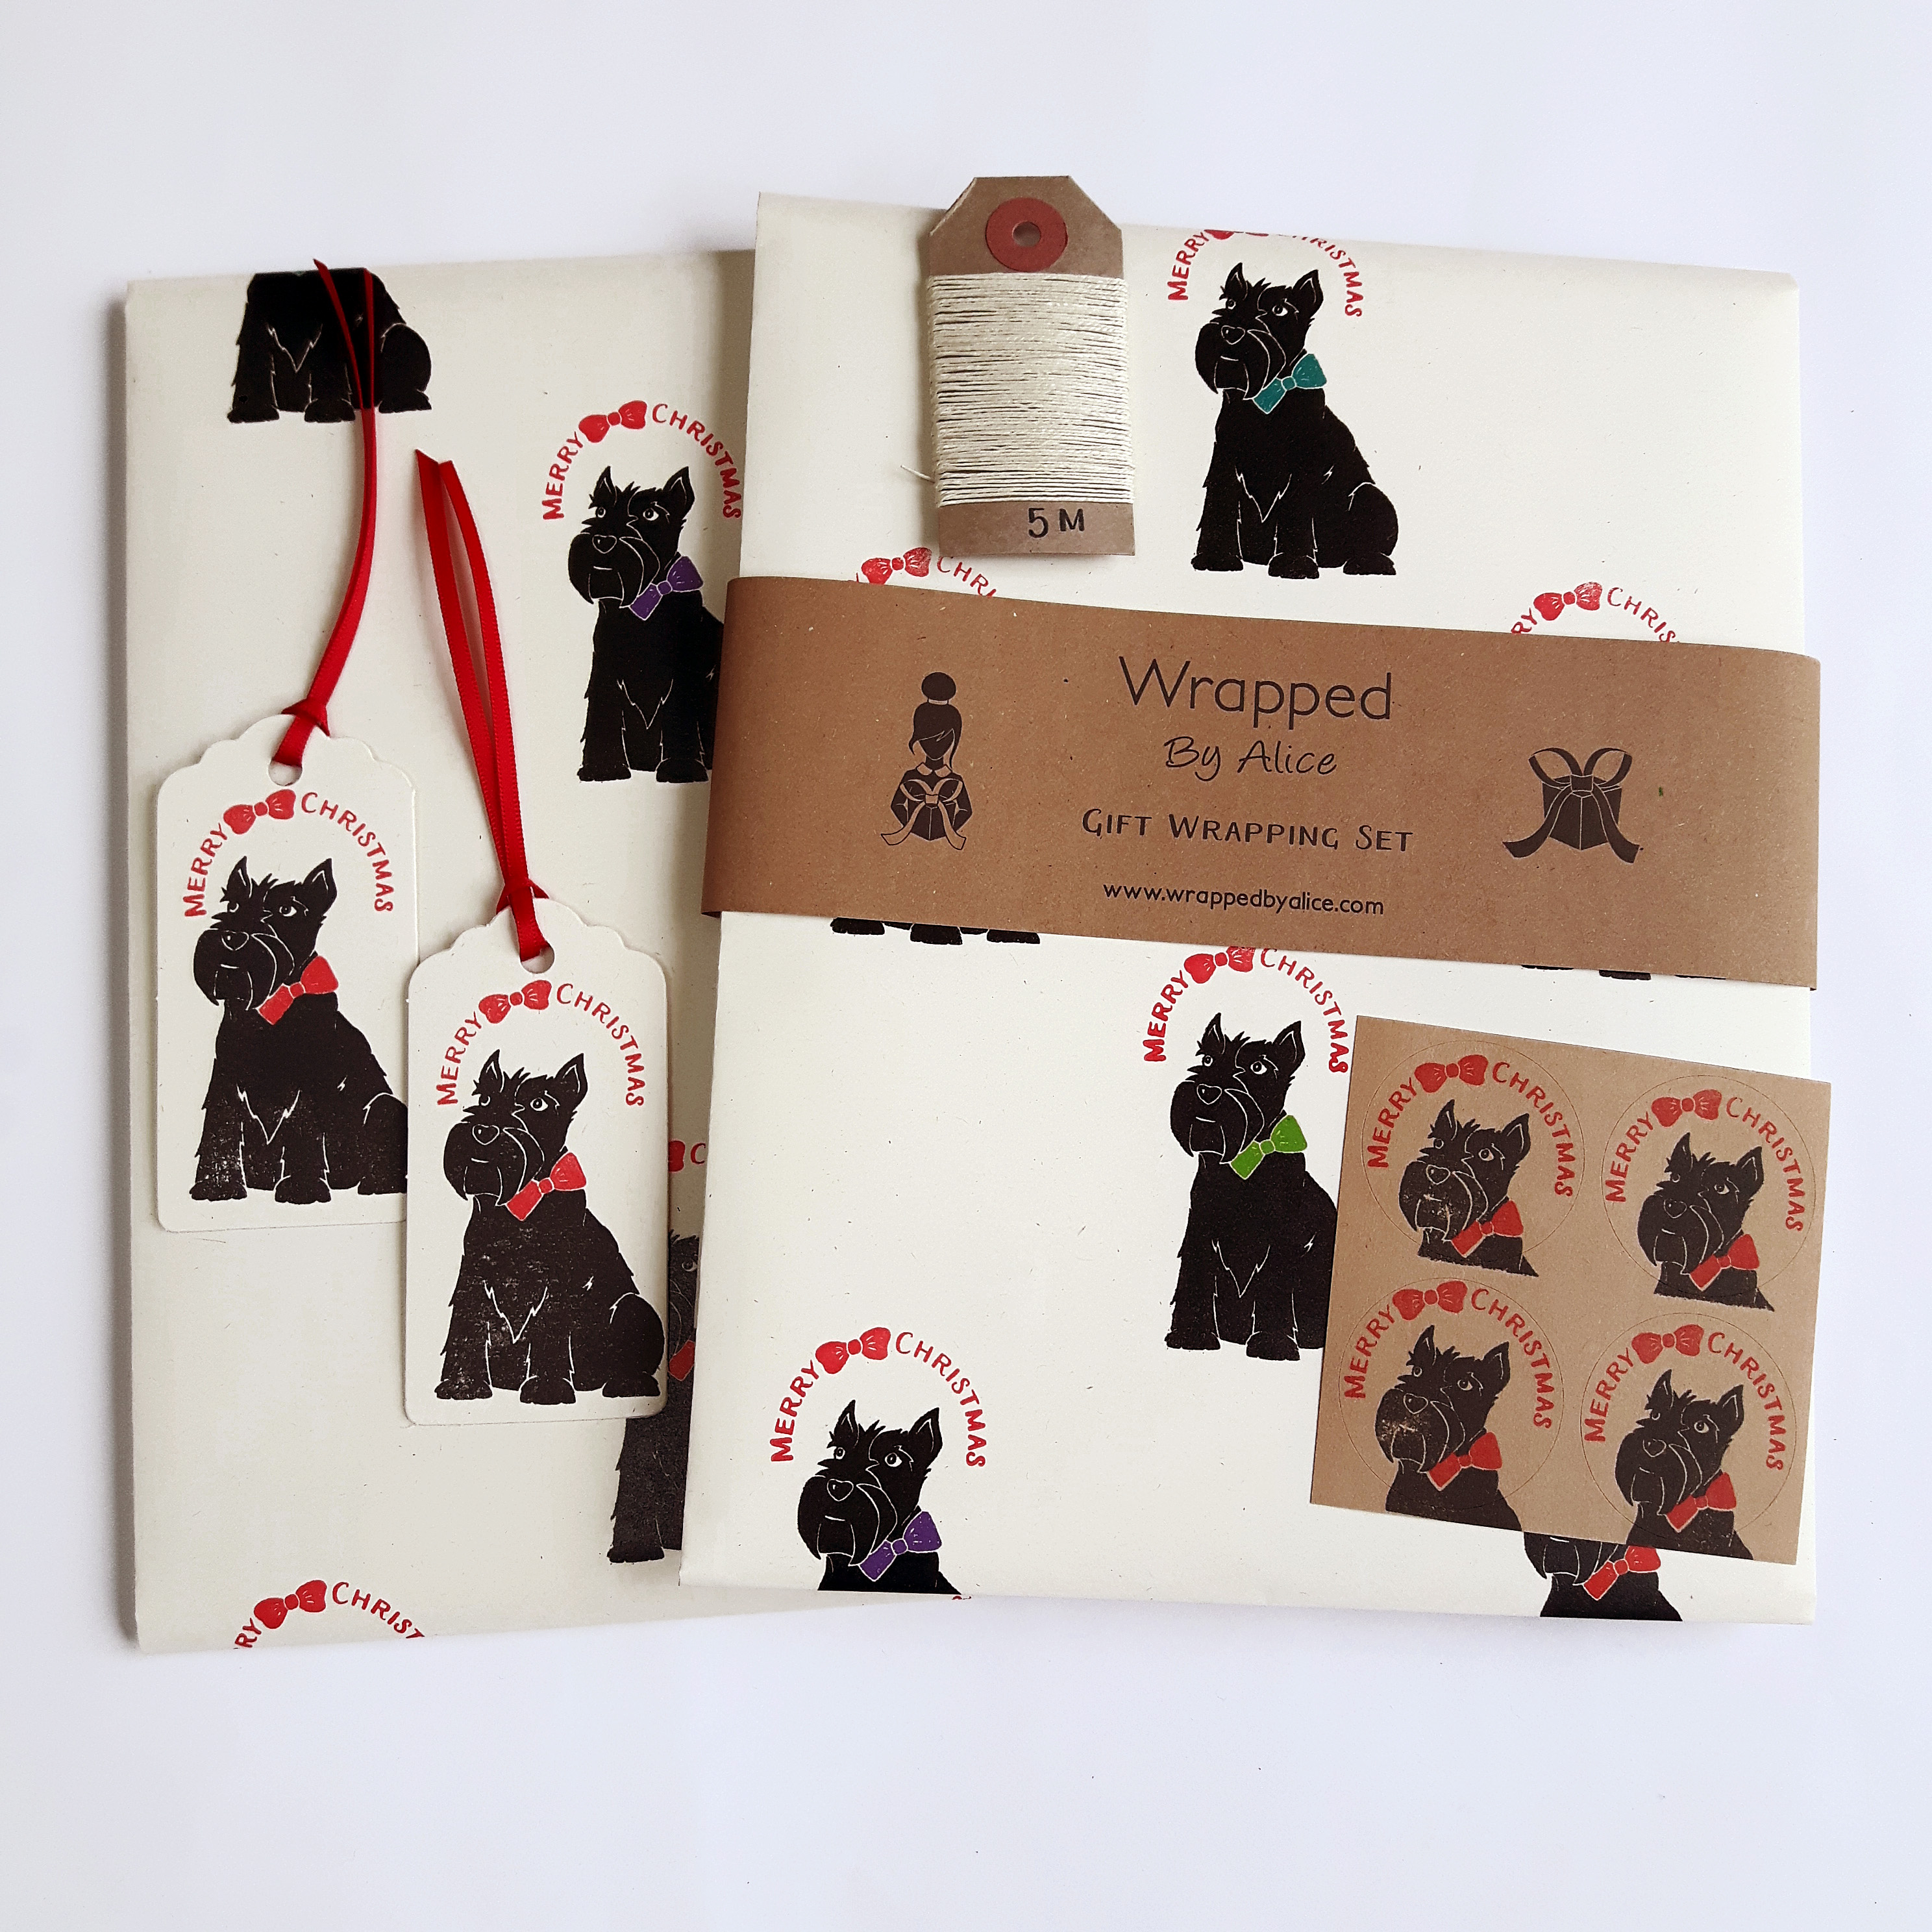 Christmas Scottie Dog Gift Wrapping Set - Wrapped By Alice